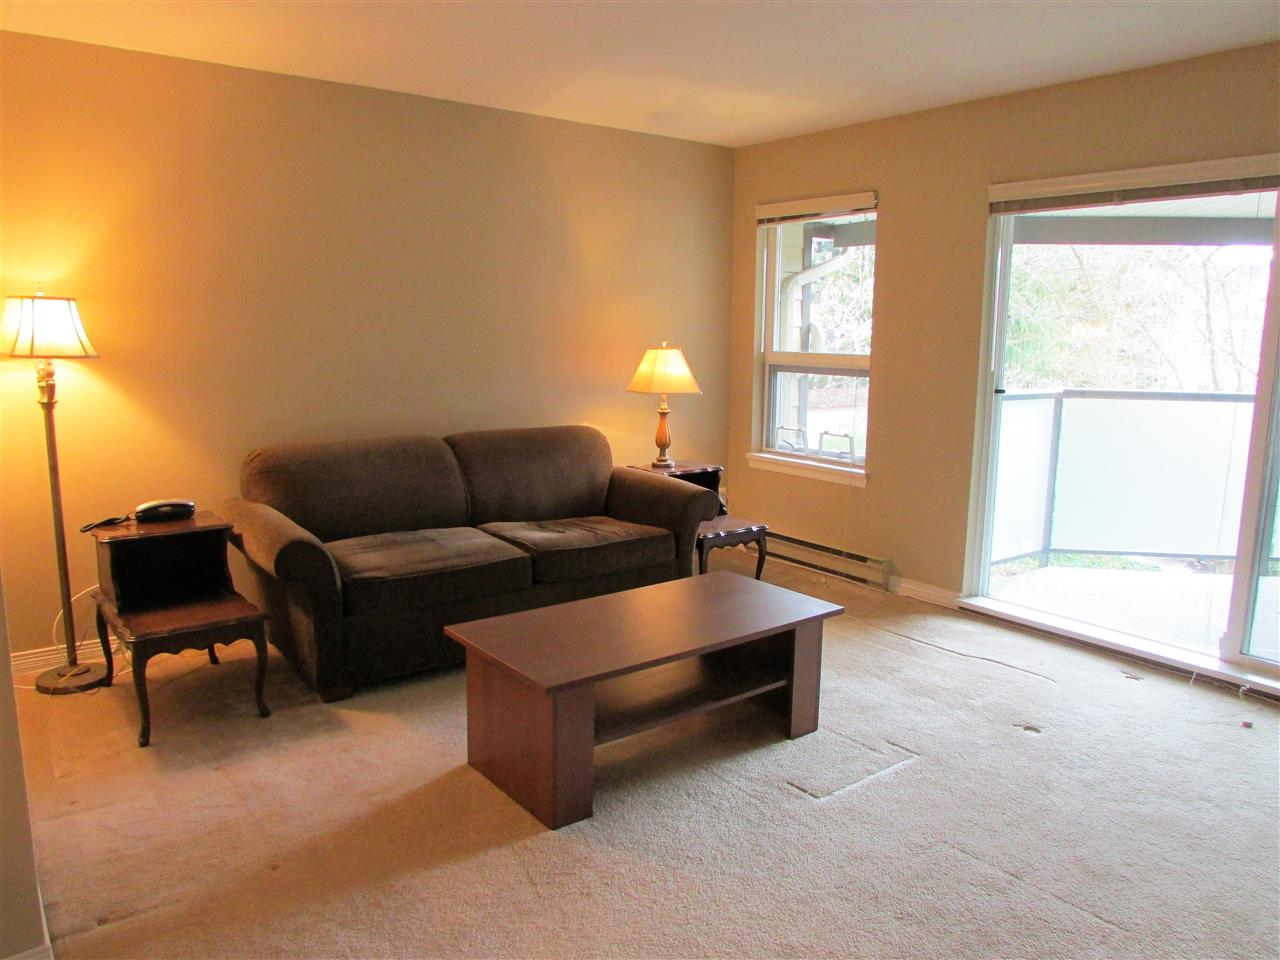 "Photo 3: 403 6707 SOUTHPOINT Drive in Burnaby: South Slope Condo for sale in ""Mission Woods"" (Burnaby South)  : MLS® # R2142149"